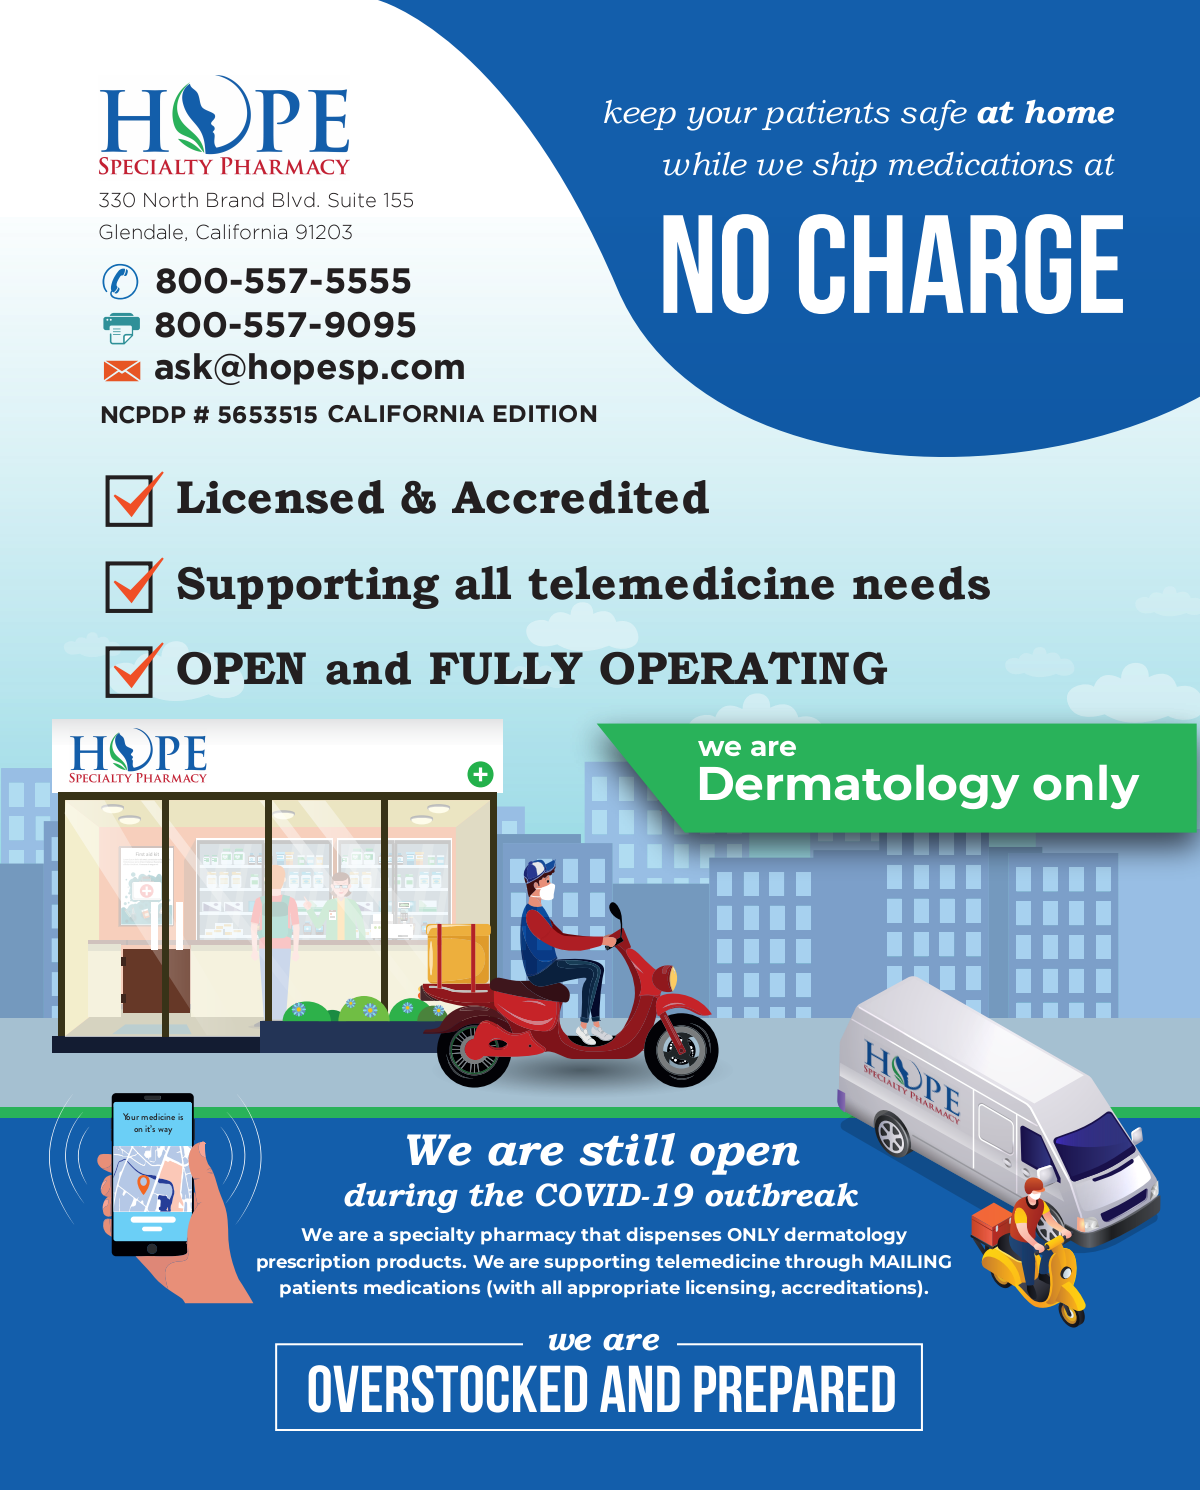 Pharmacy Services for Telemedicine